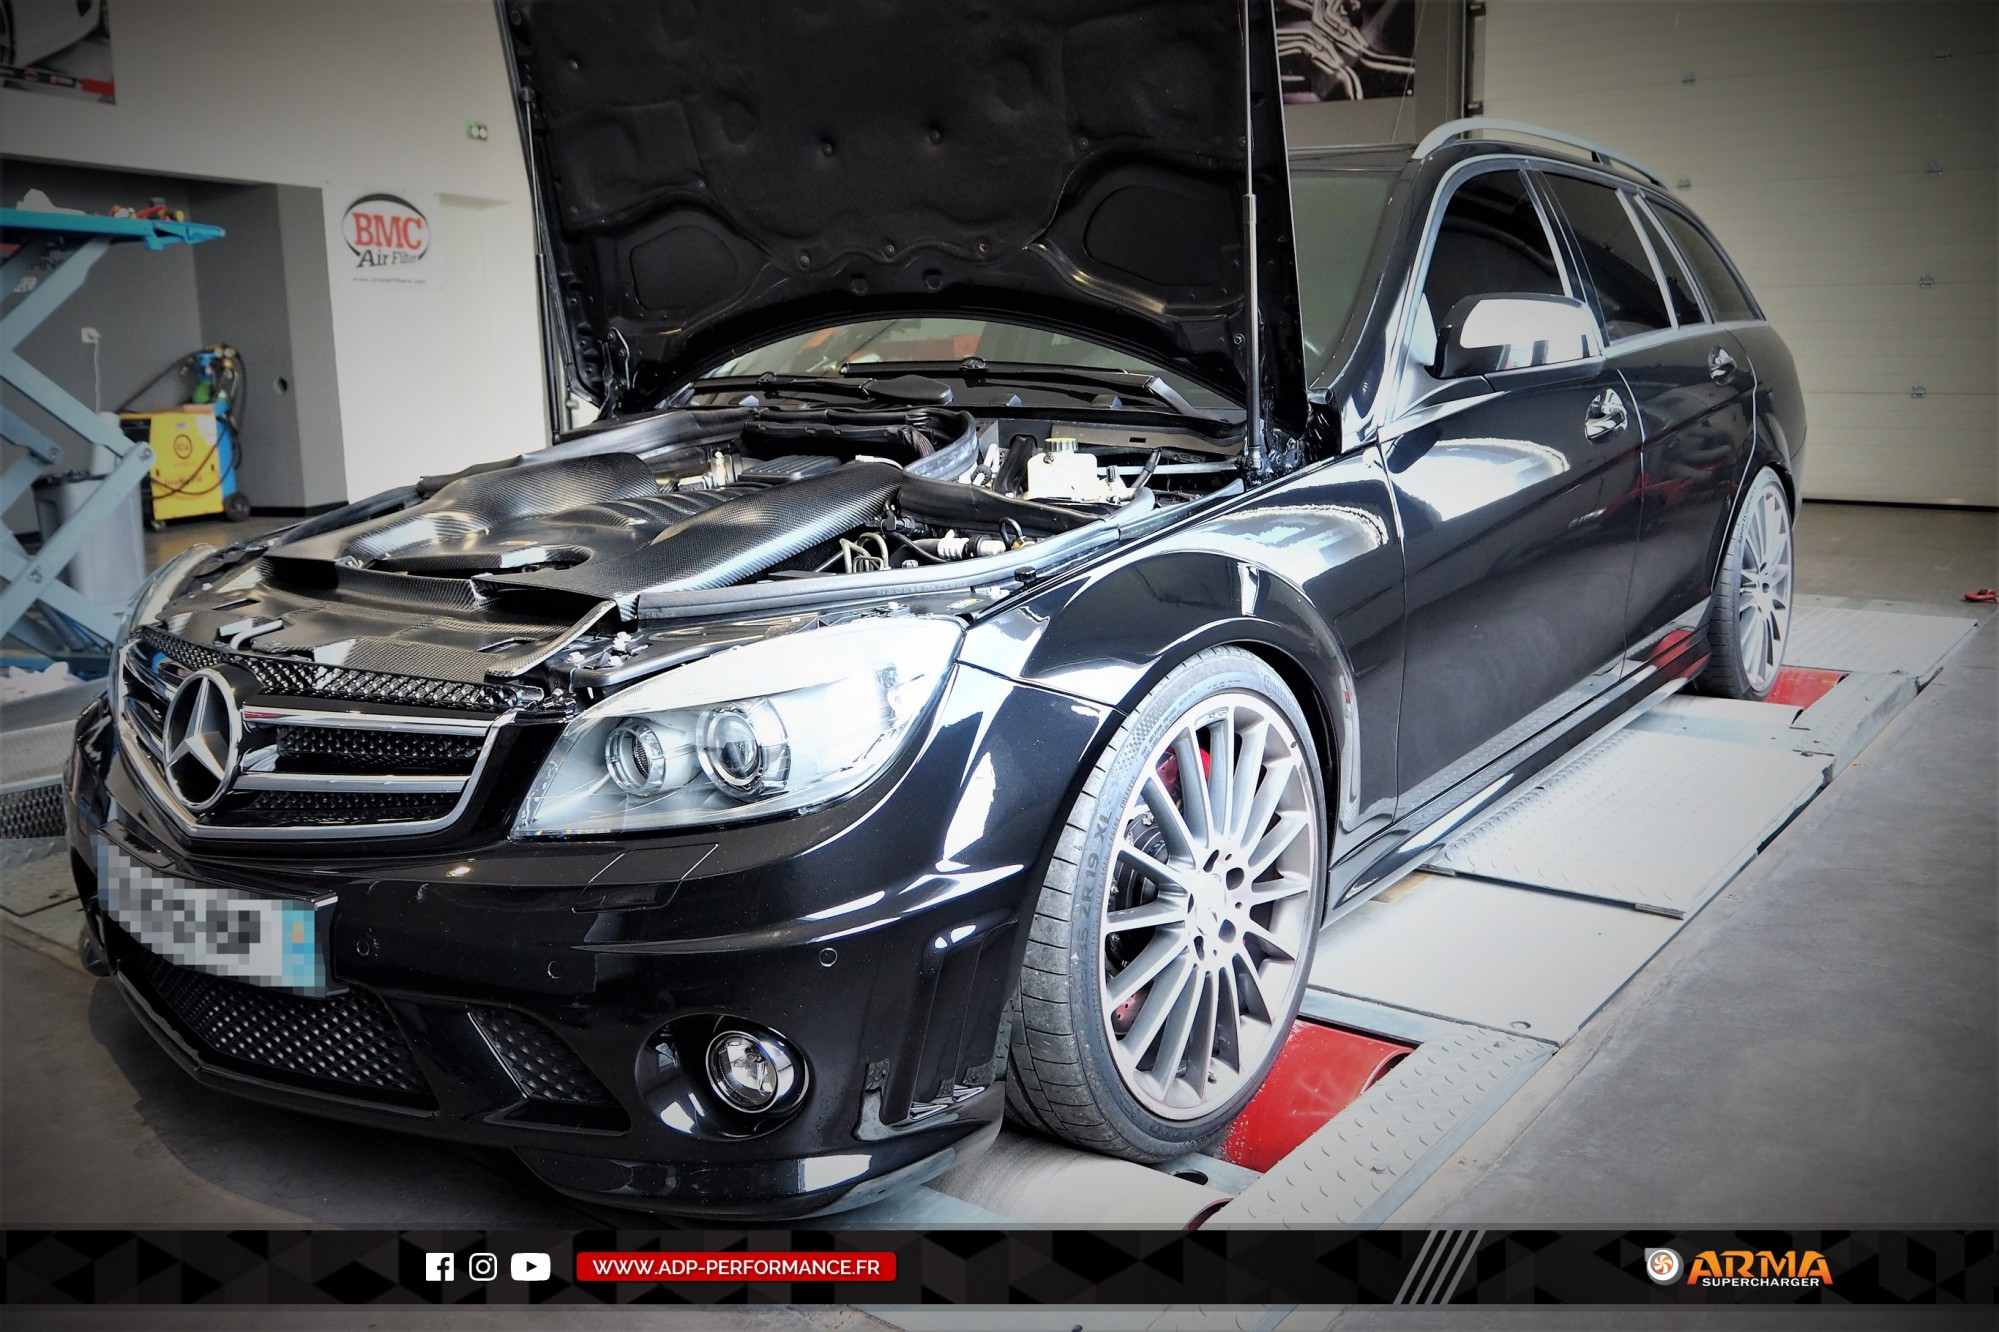 Admission arma speed mercedes c63 amg marseille realisations reprogrammation auto sur - Dafy speed salon de provence ...